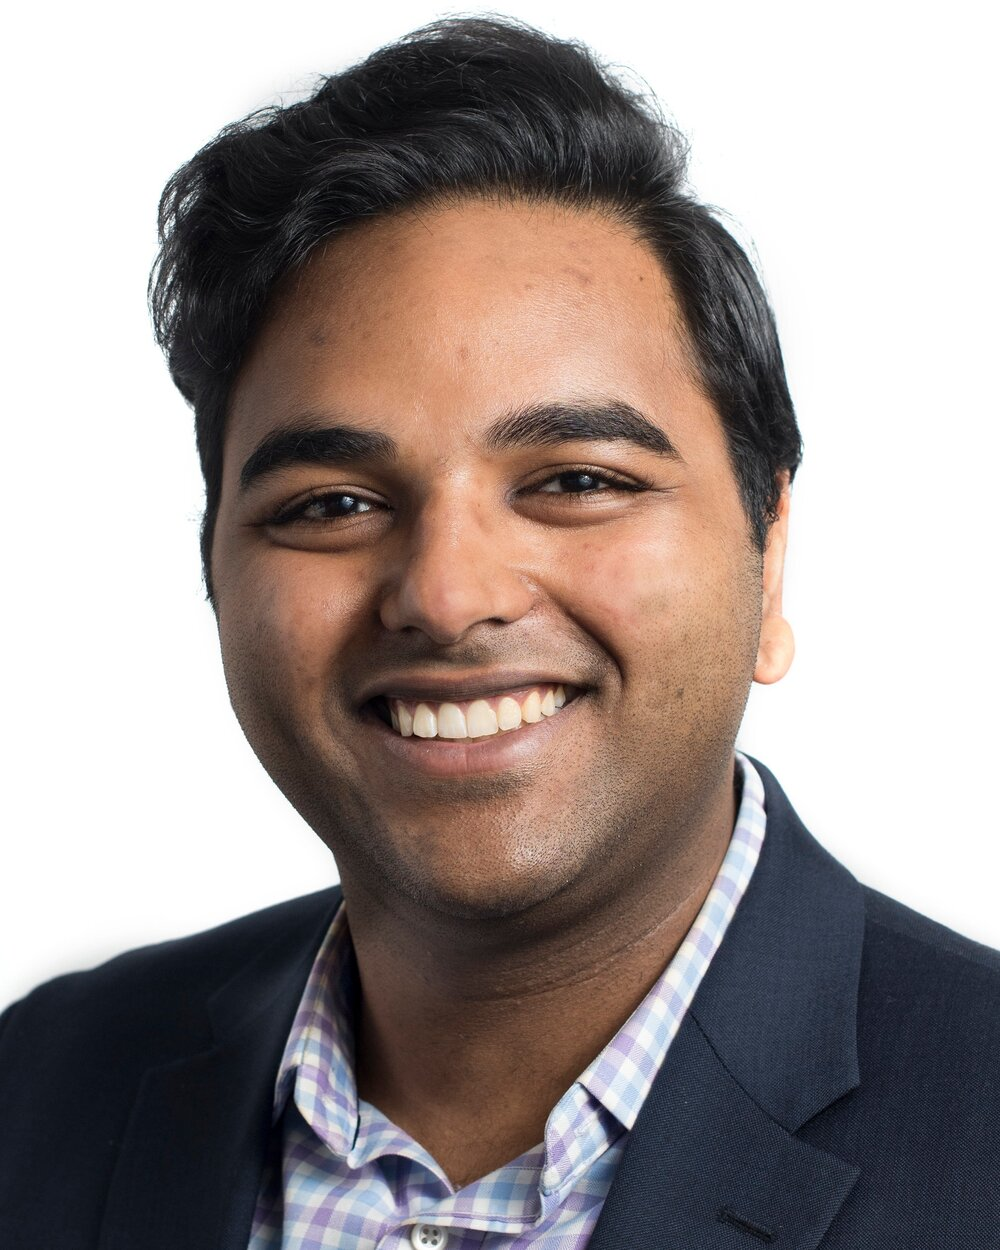 Neel S. Madhukar (PhD), CEO & Co-Founder